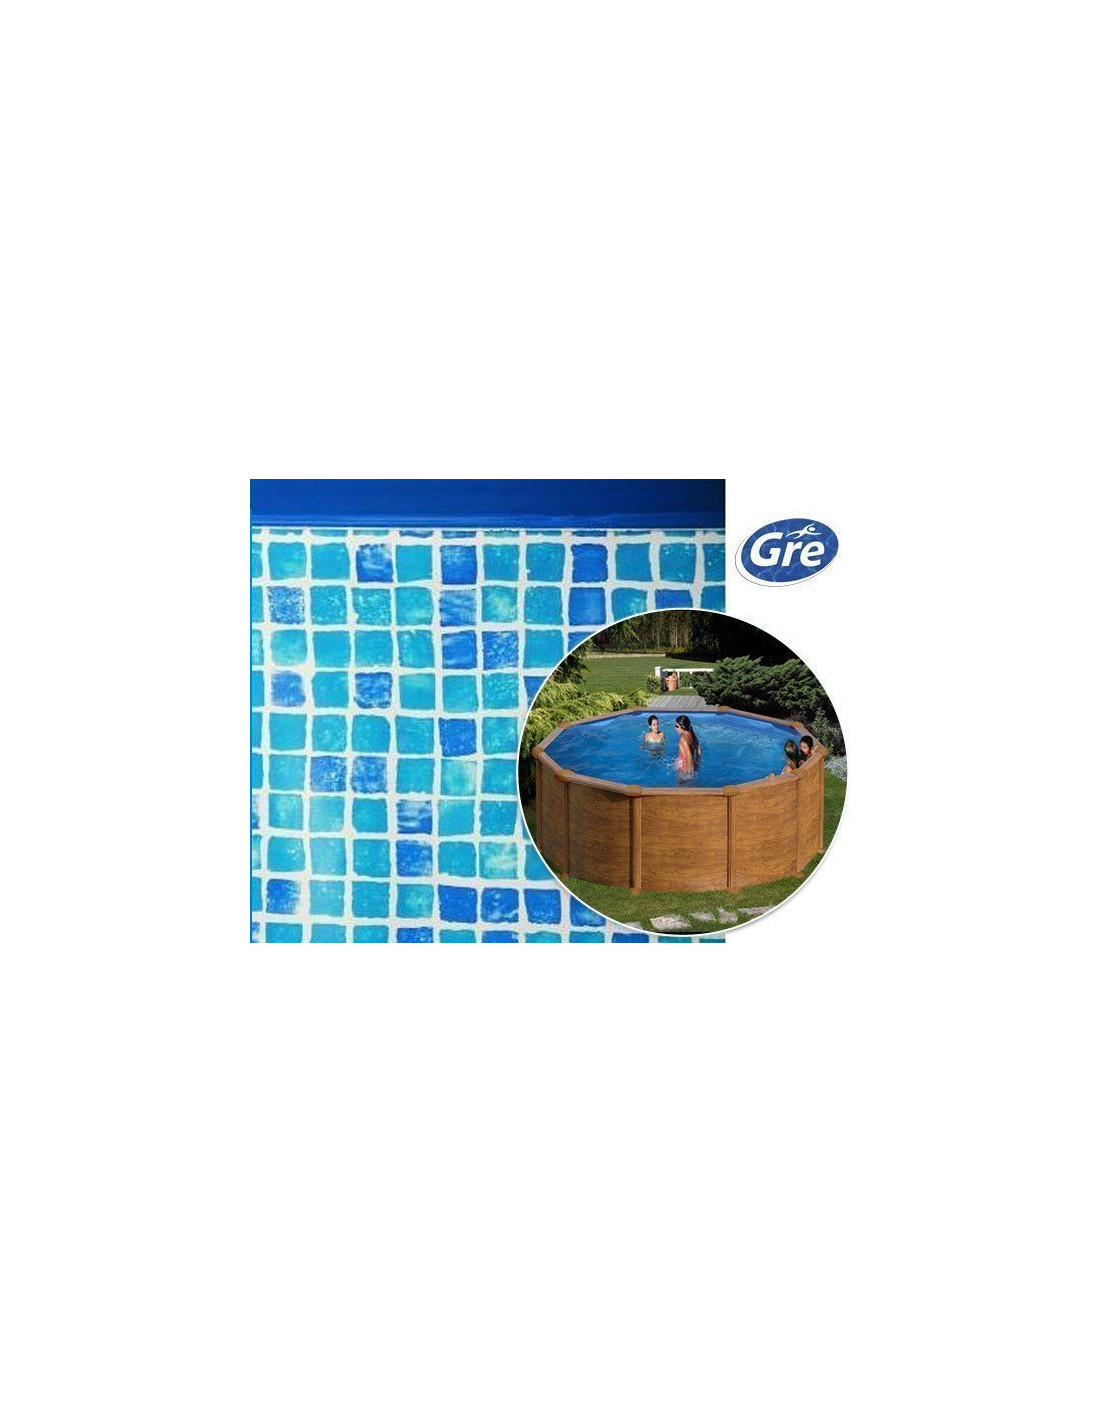 Liner piscine hors sol ronde gre pool coloris mosa que for Liner piscine ronde